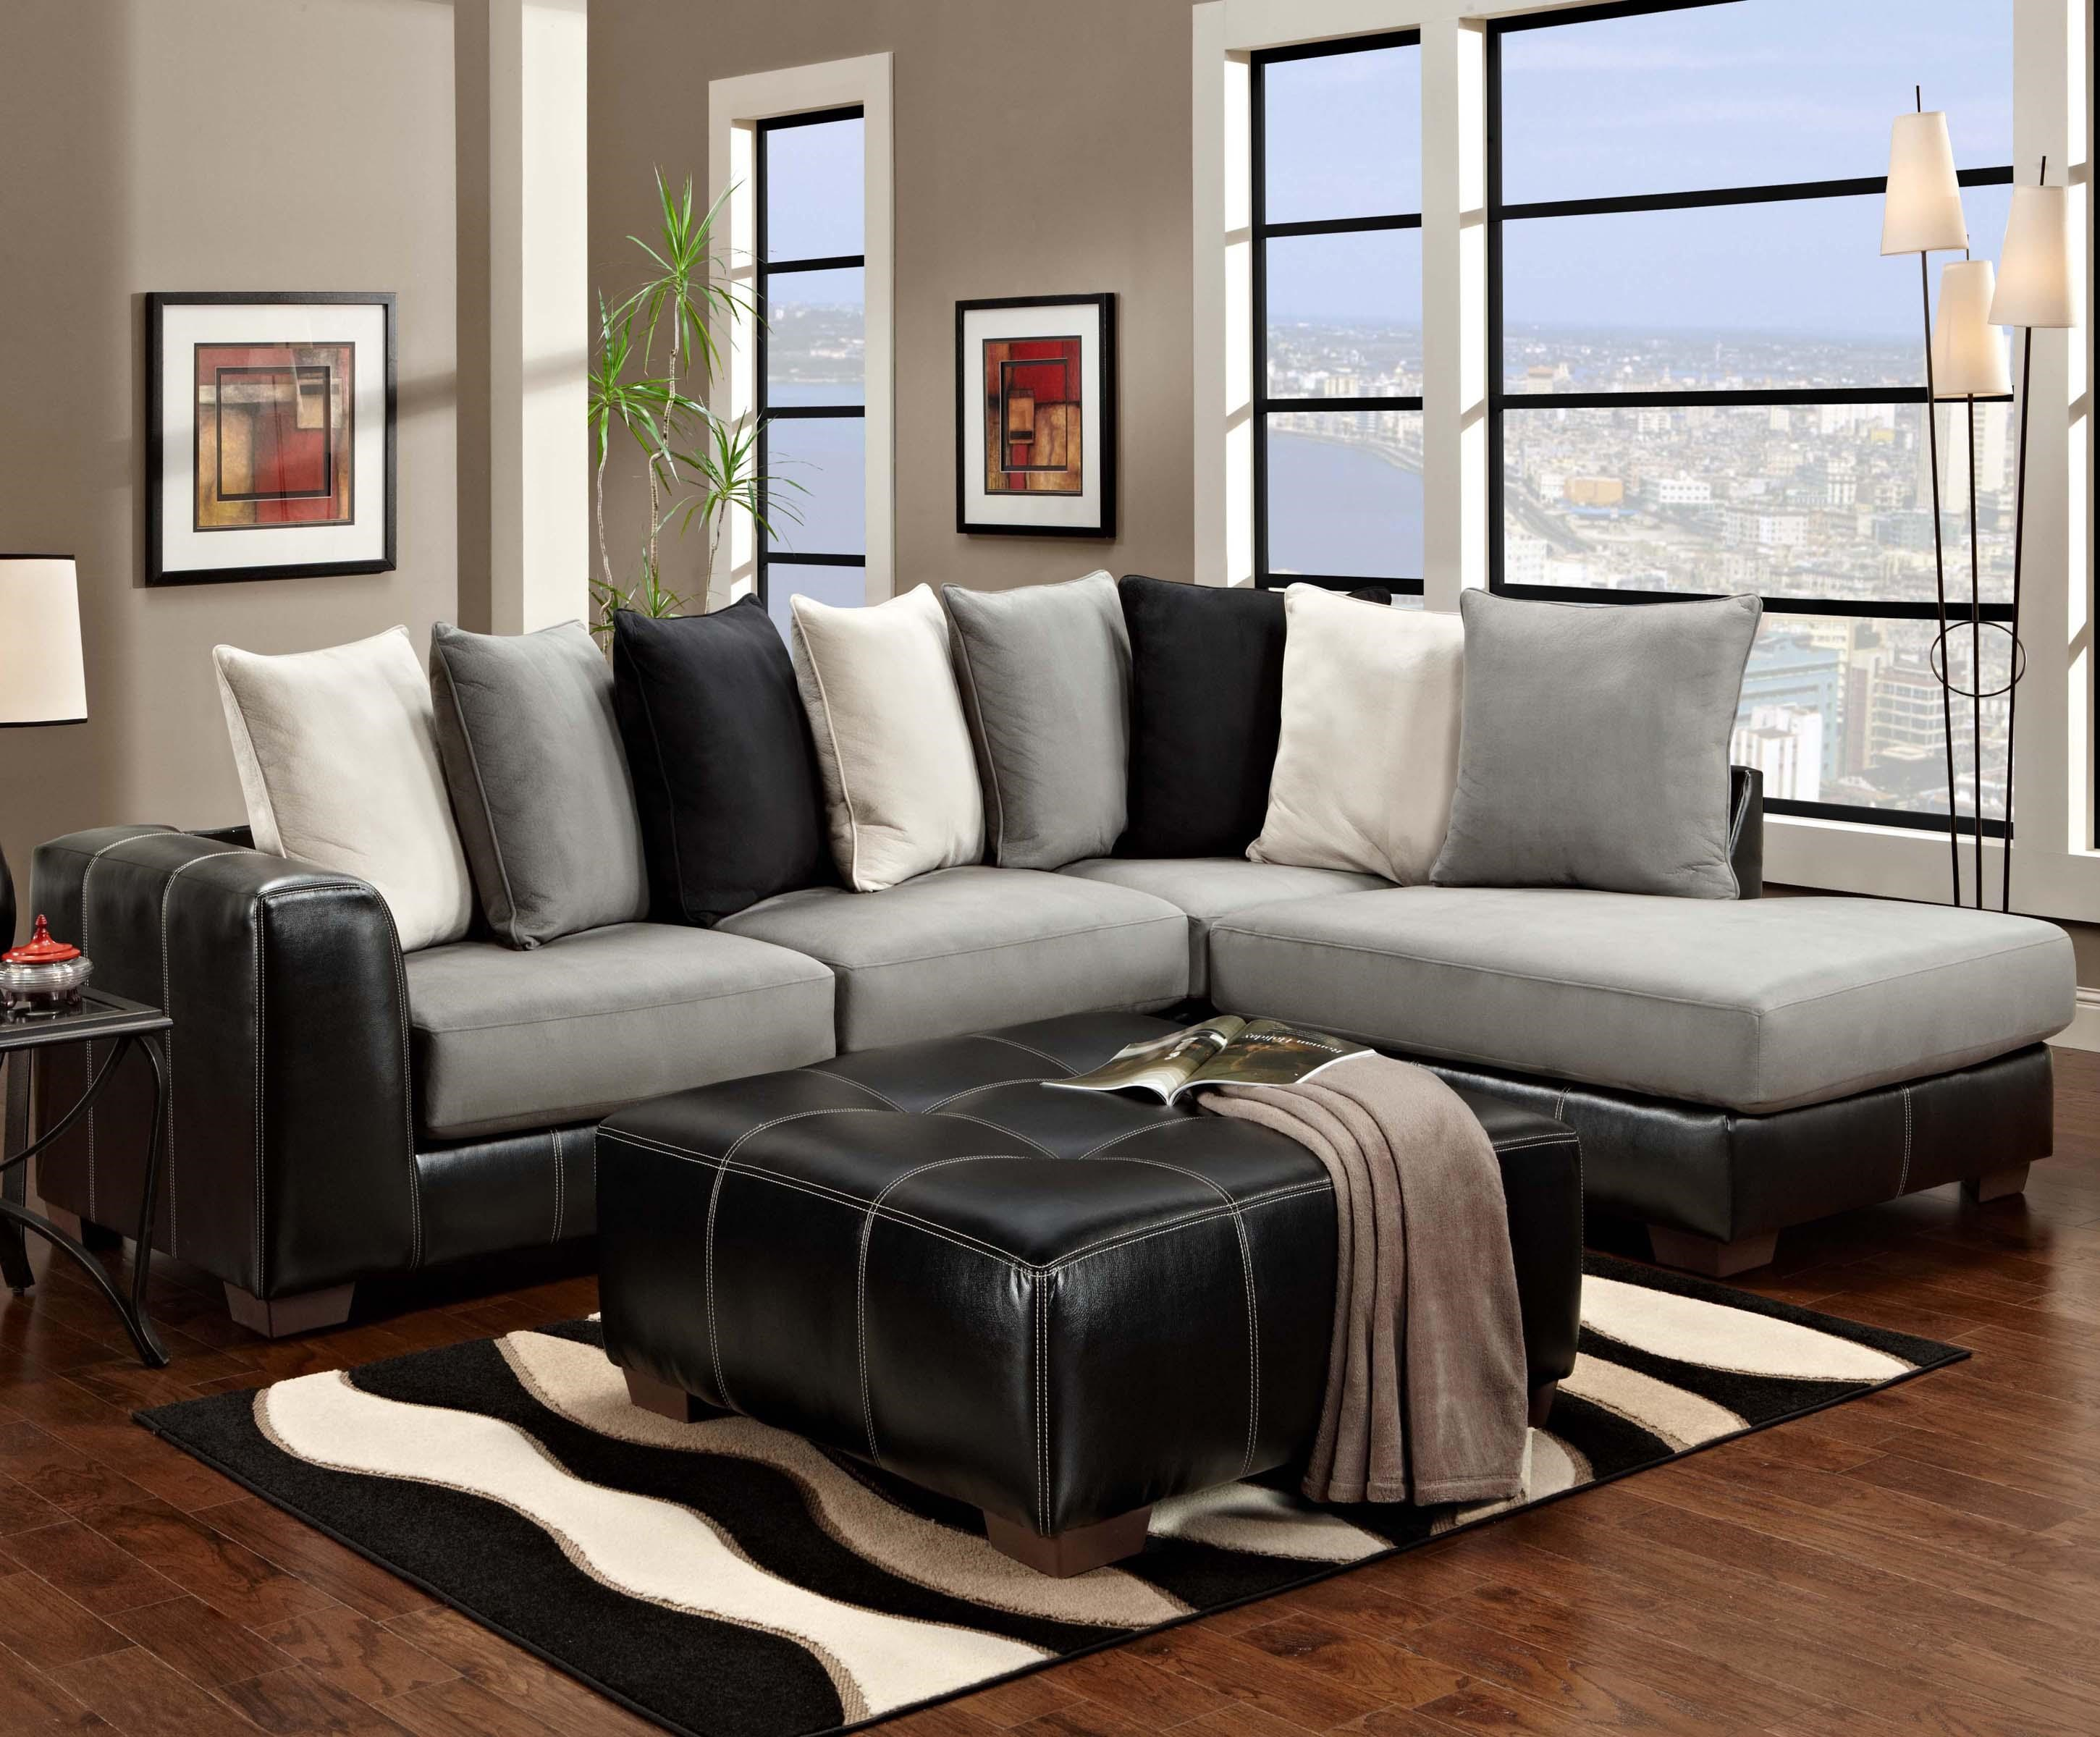 Affordable Furniture 6350 Two Piece Sectional With Chaise Ivan Smith Furniture Sofa Sectional